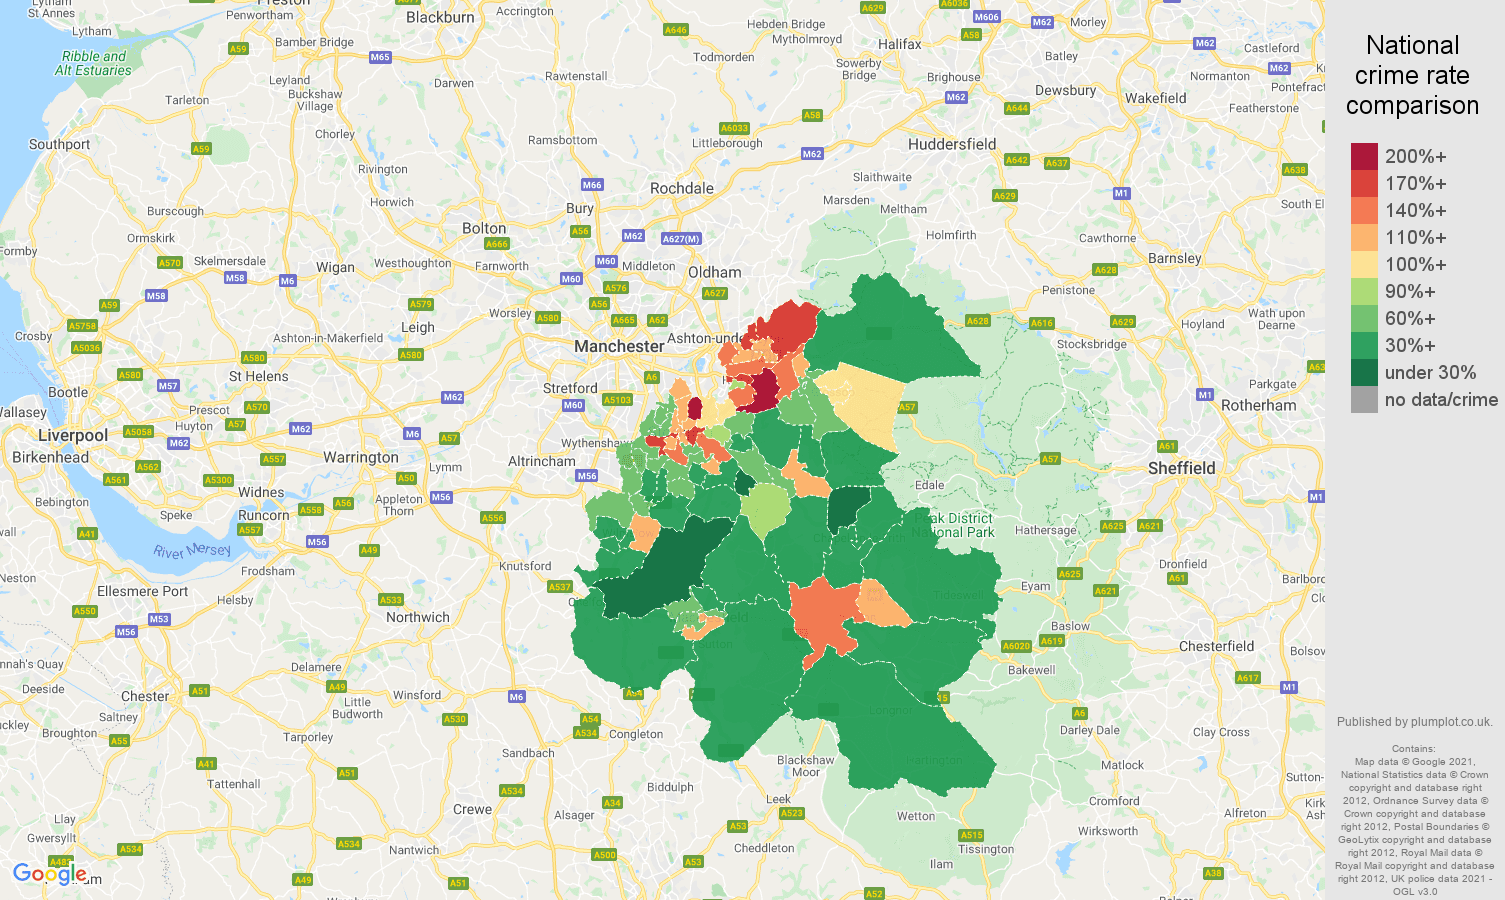 Stockport criminal damage and arson crime rate comparison map